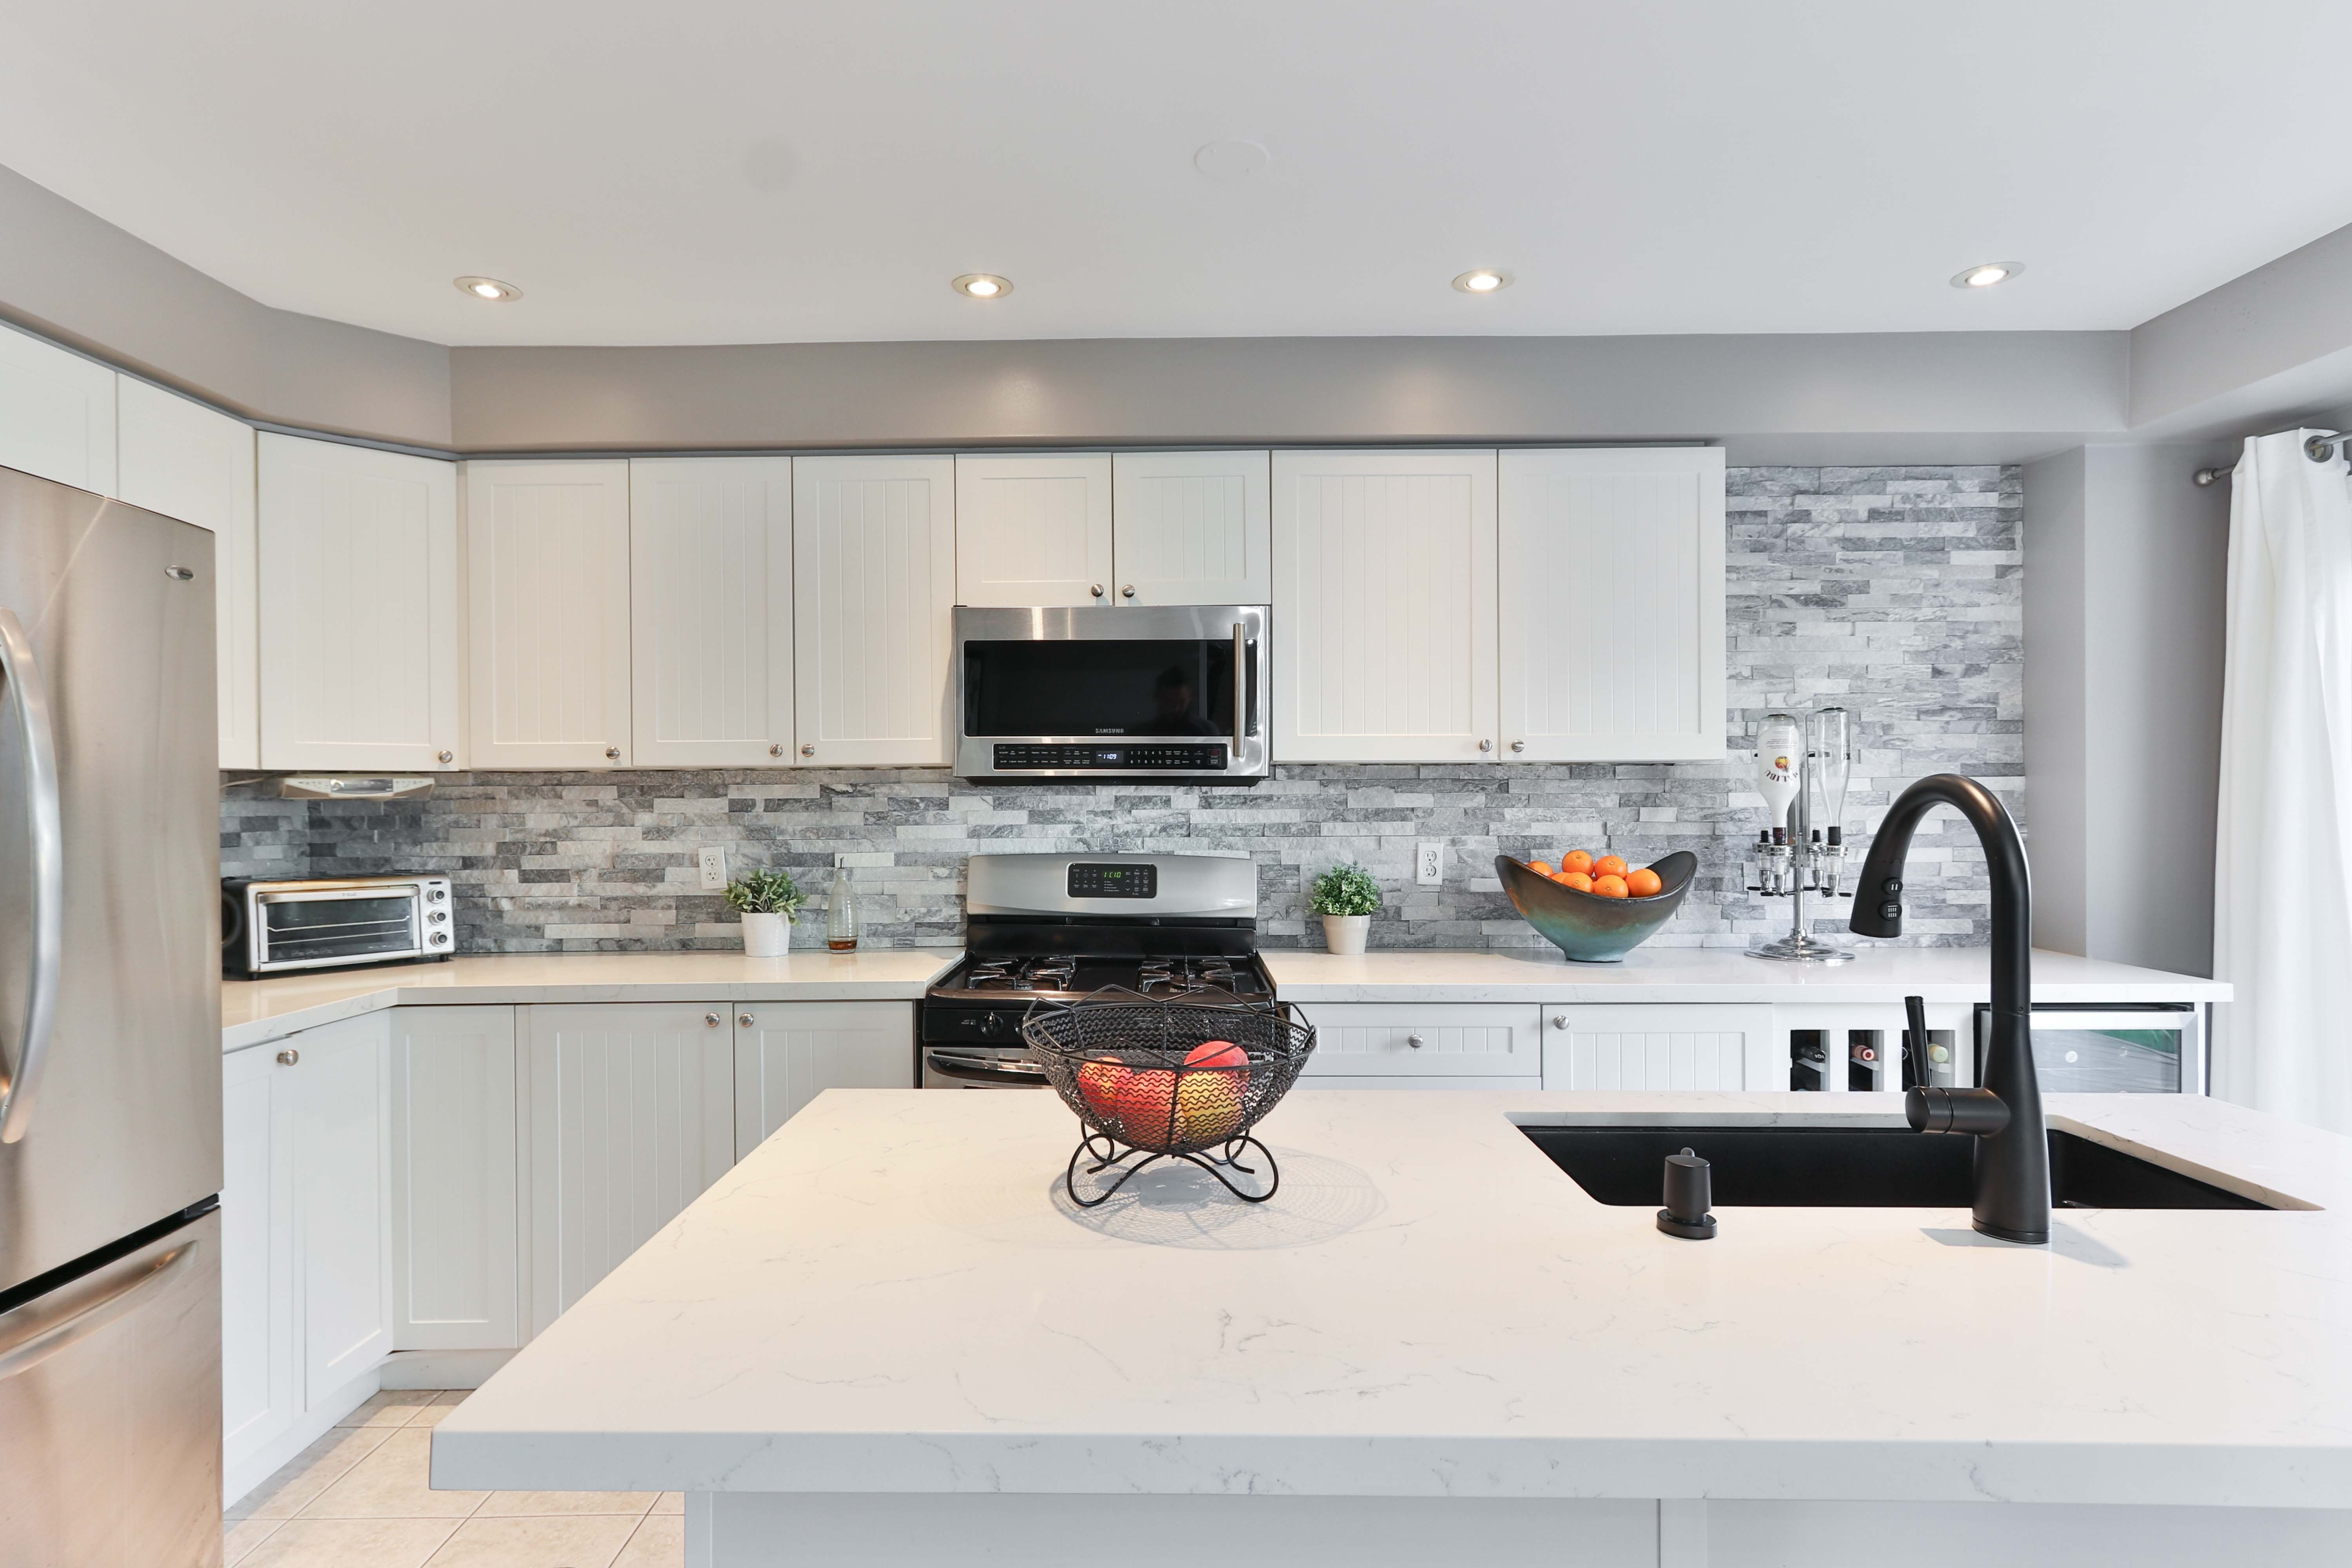 Quality Edmonton Kitchen Renovations Contact Us Today And Let Us